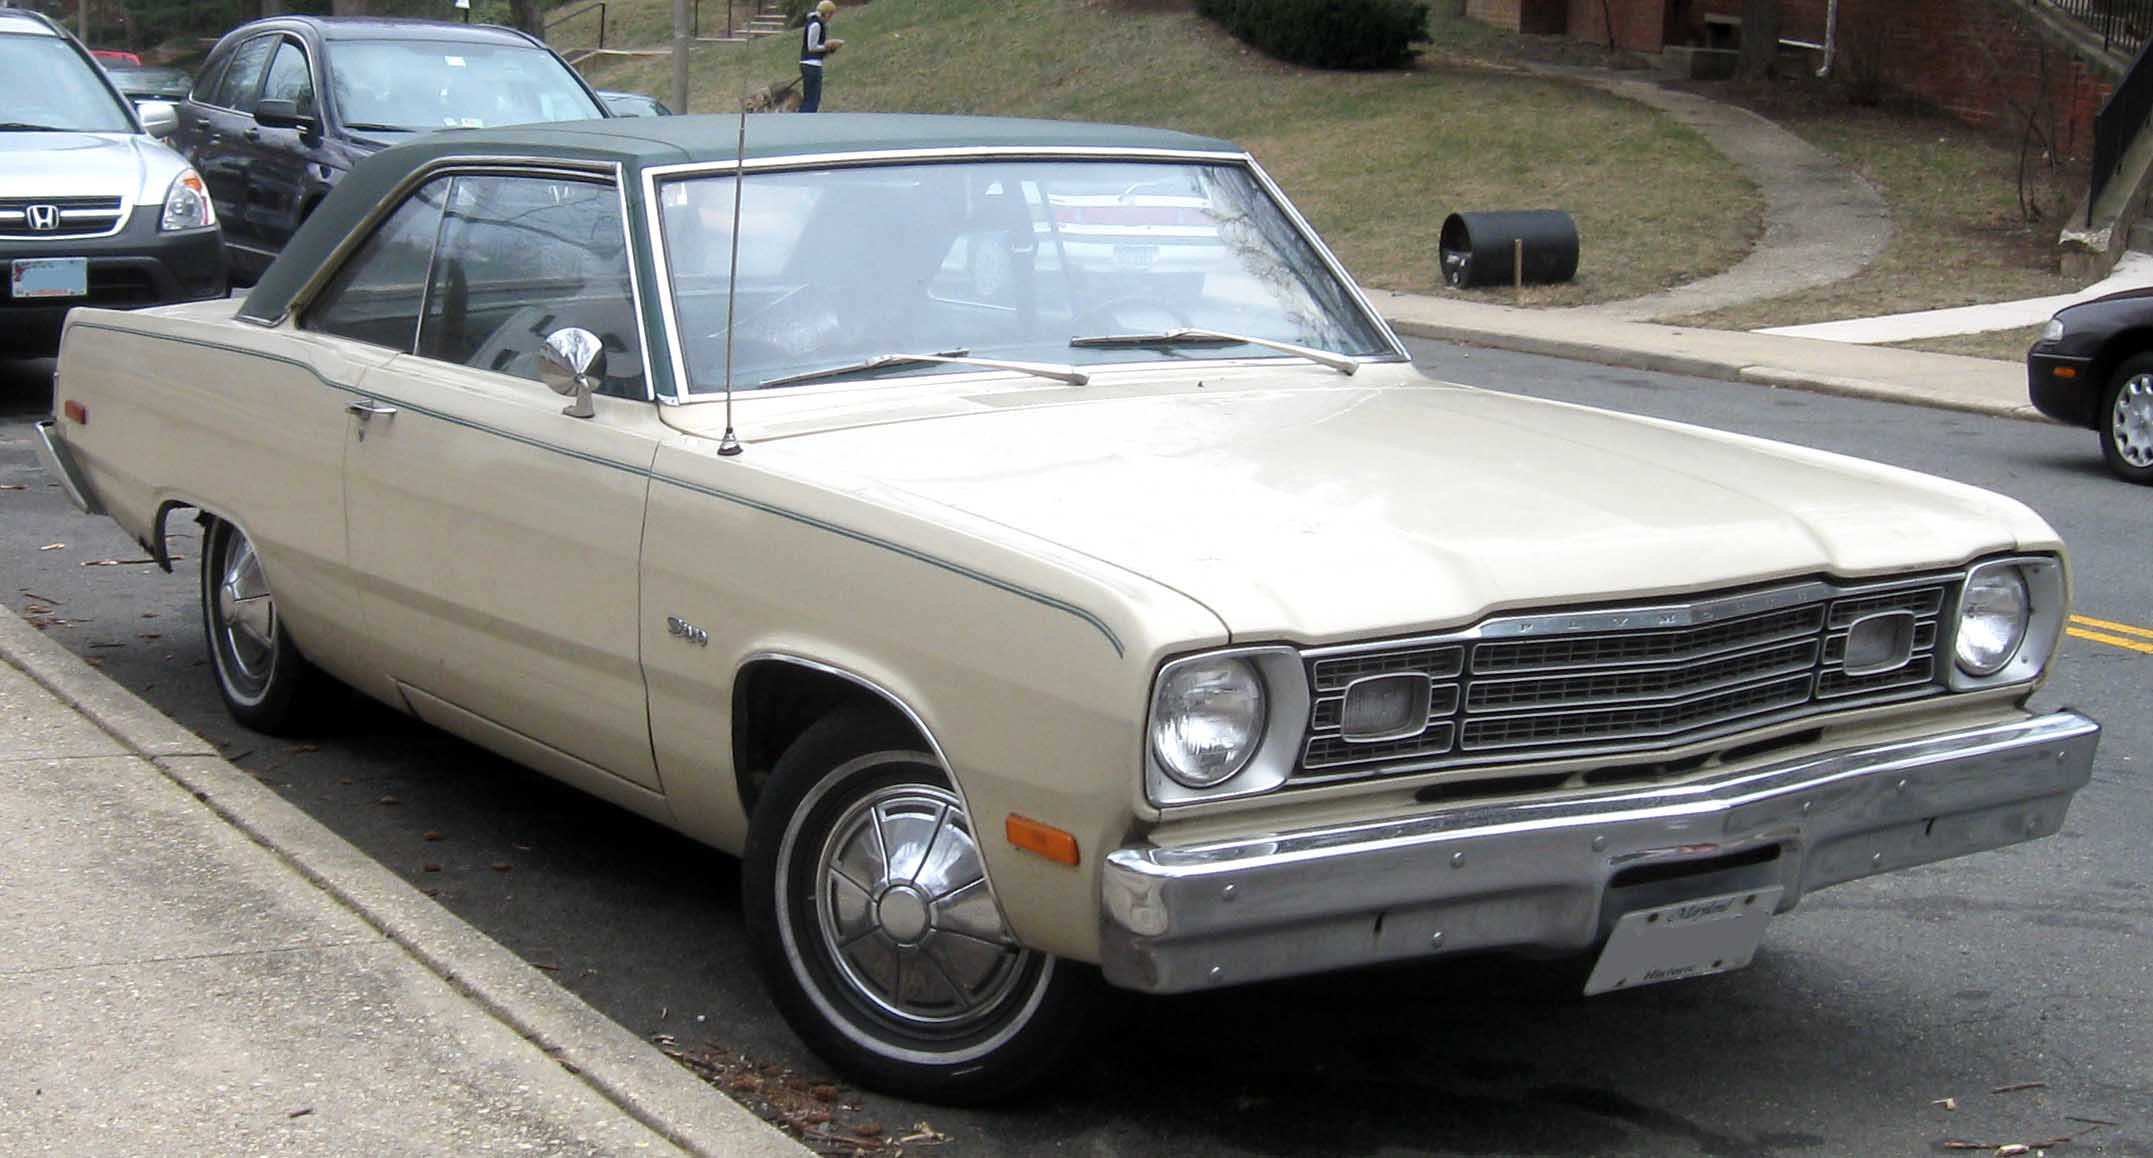 1974 Chrysler Valiant #6